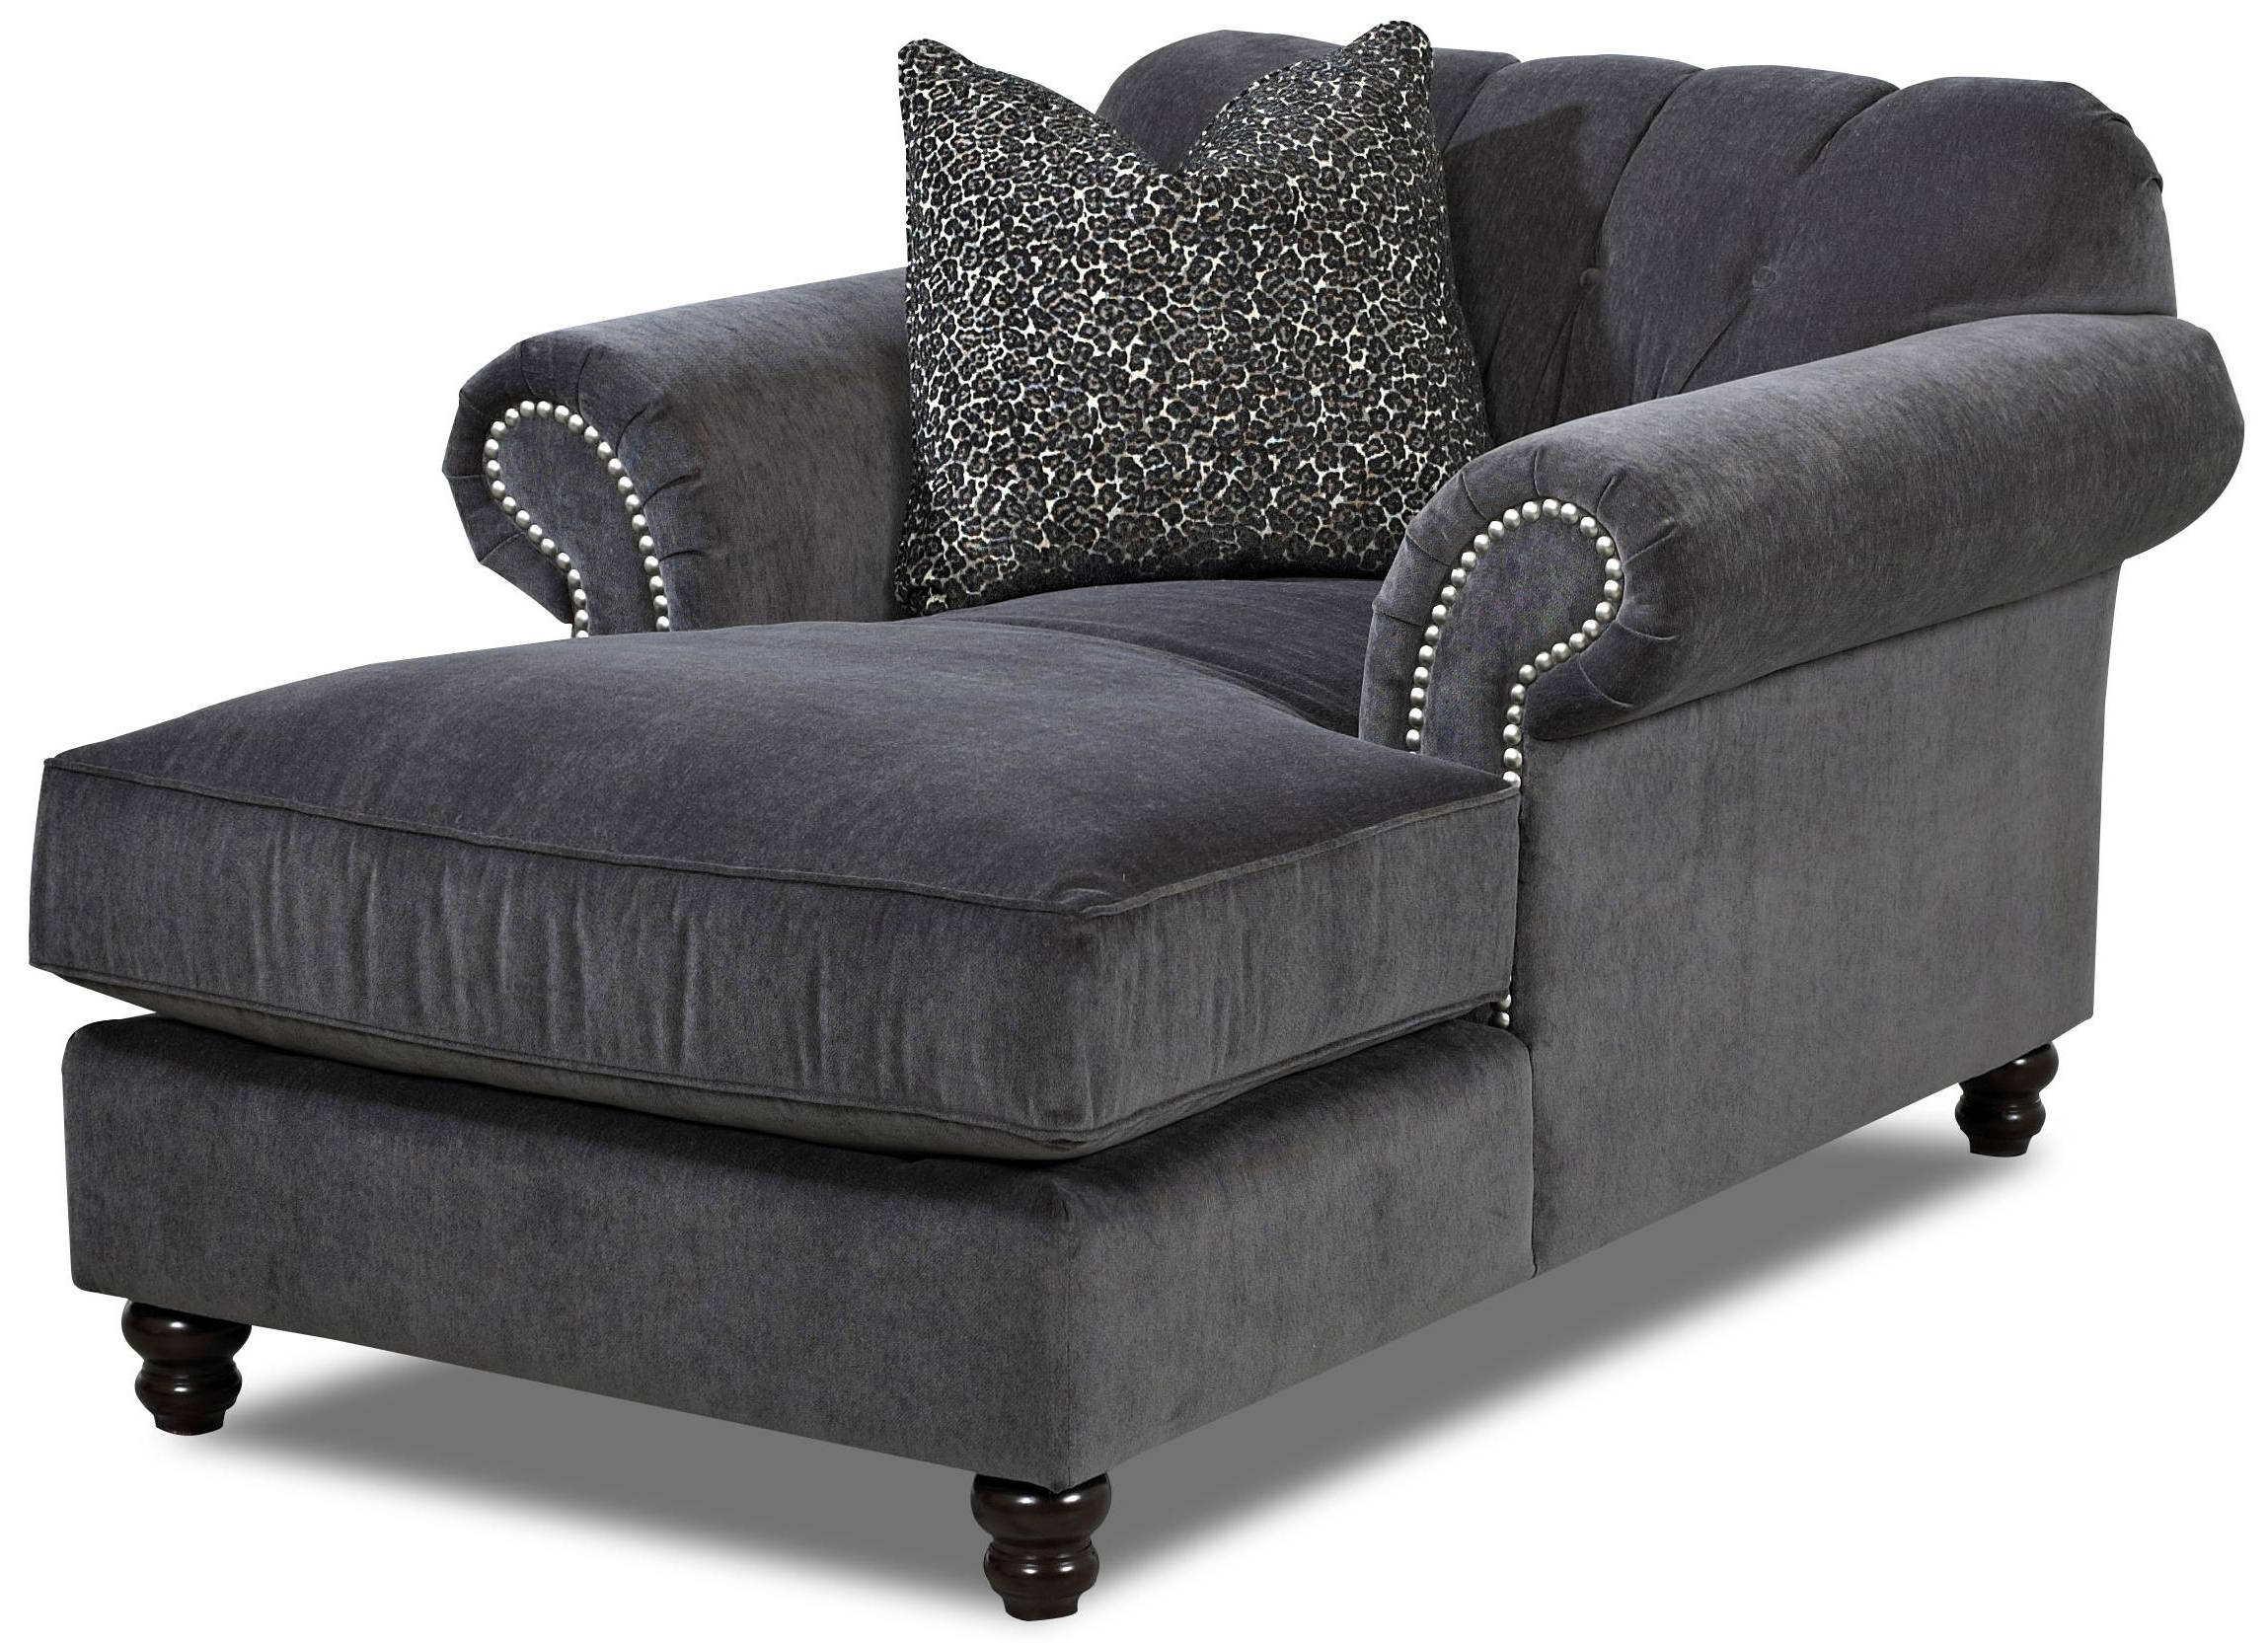 Lounge Chair : Lounge Indoor Accent Chairs For Living Room In Best And Newest Velvet Chaise Lounge Chairs (View 7 of 15)